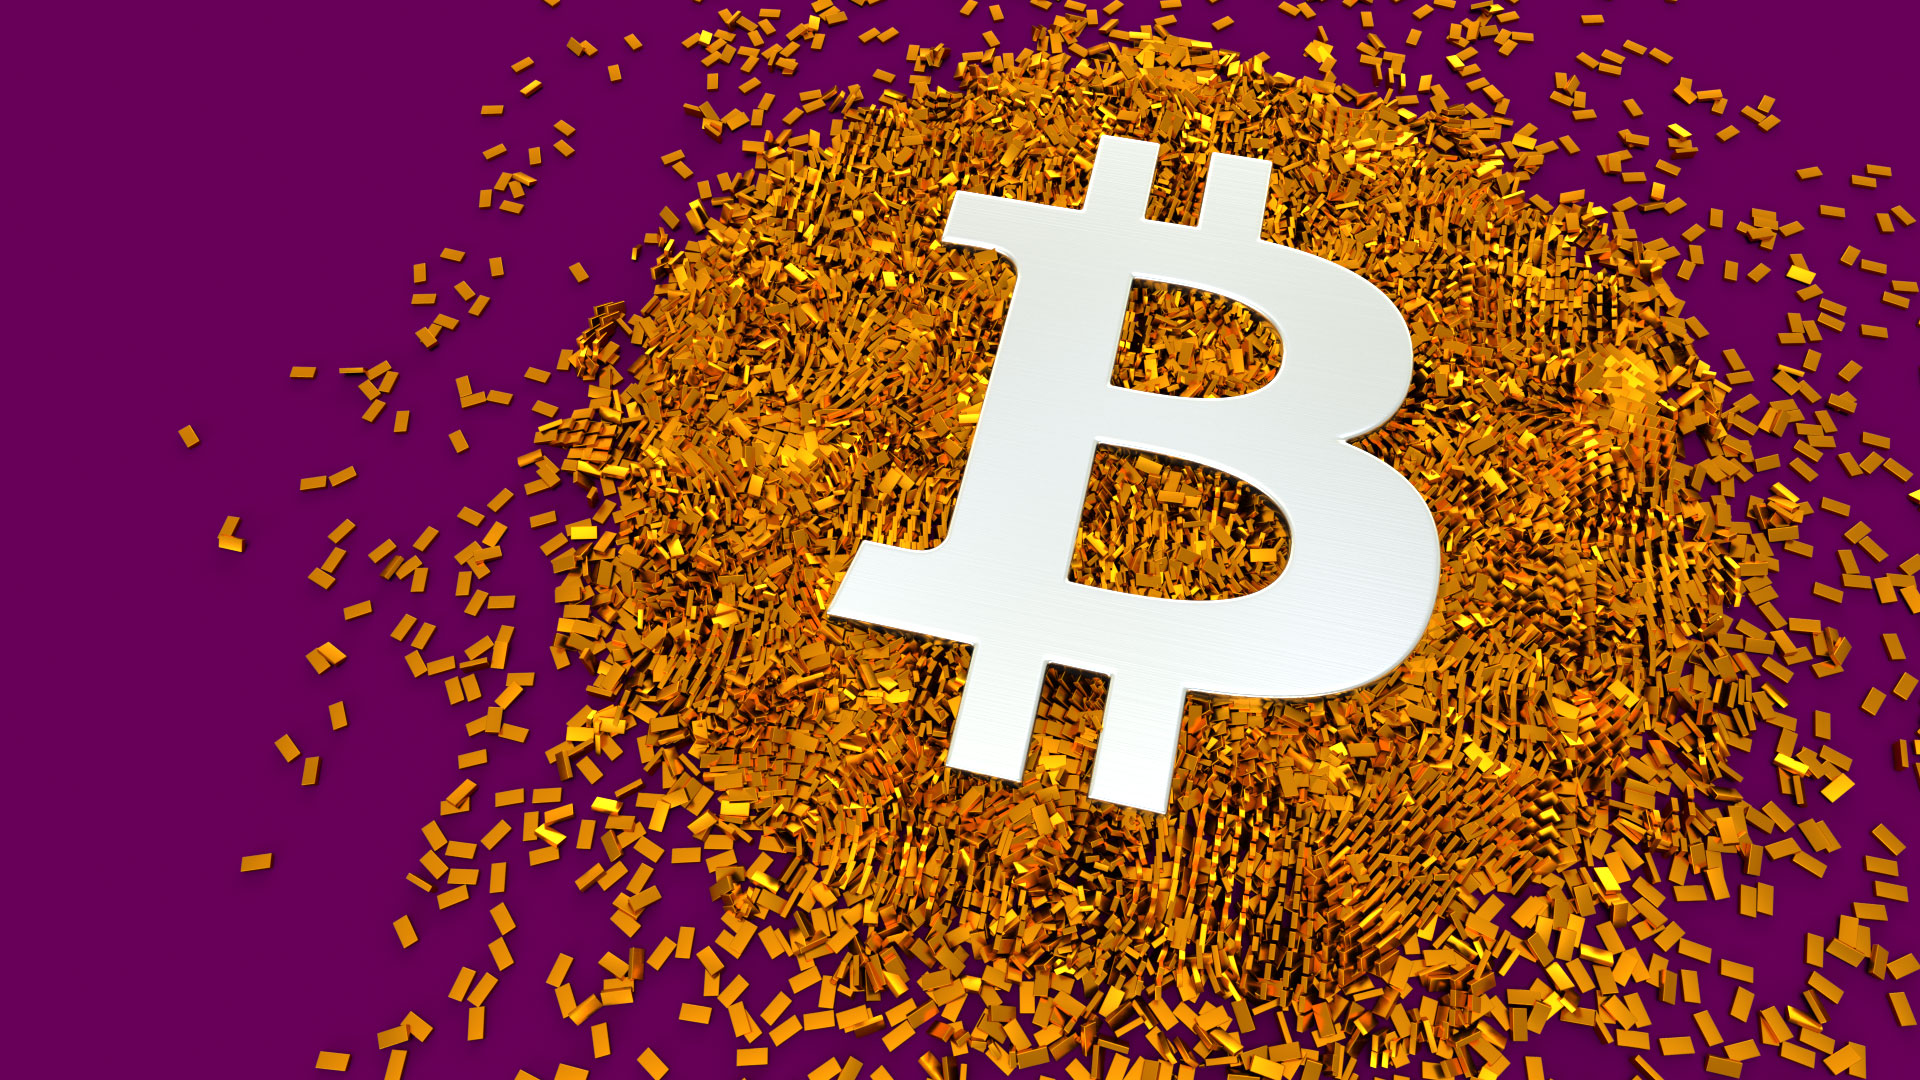 BTC-bitcoin-gold-pile-burgandy-background-render-bitgraphix-no-signature_A